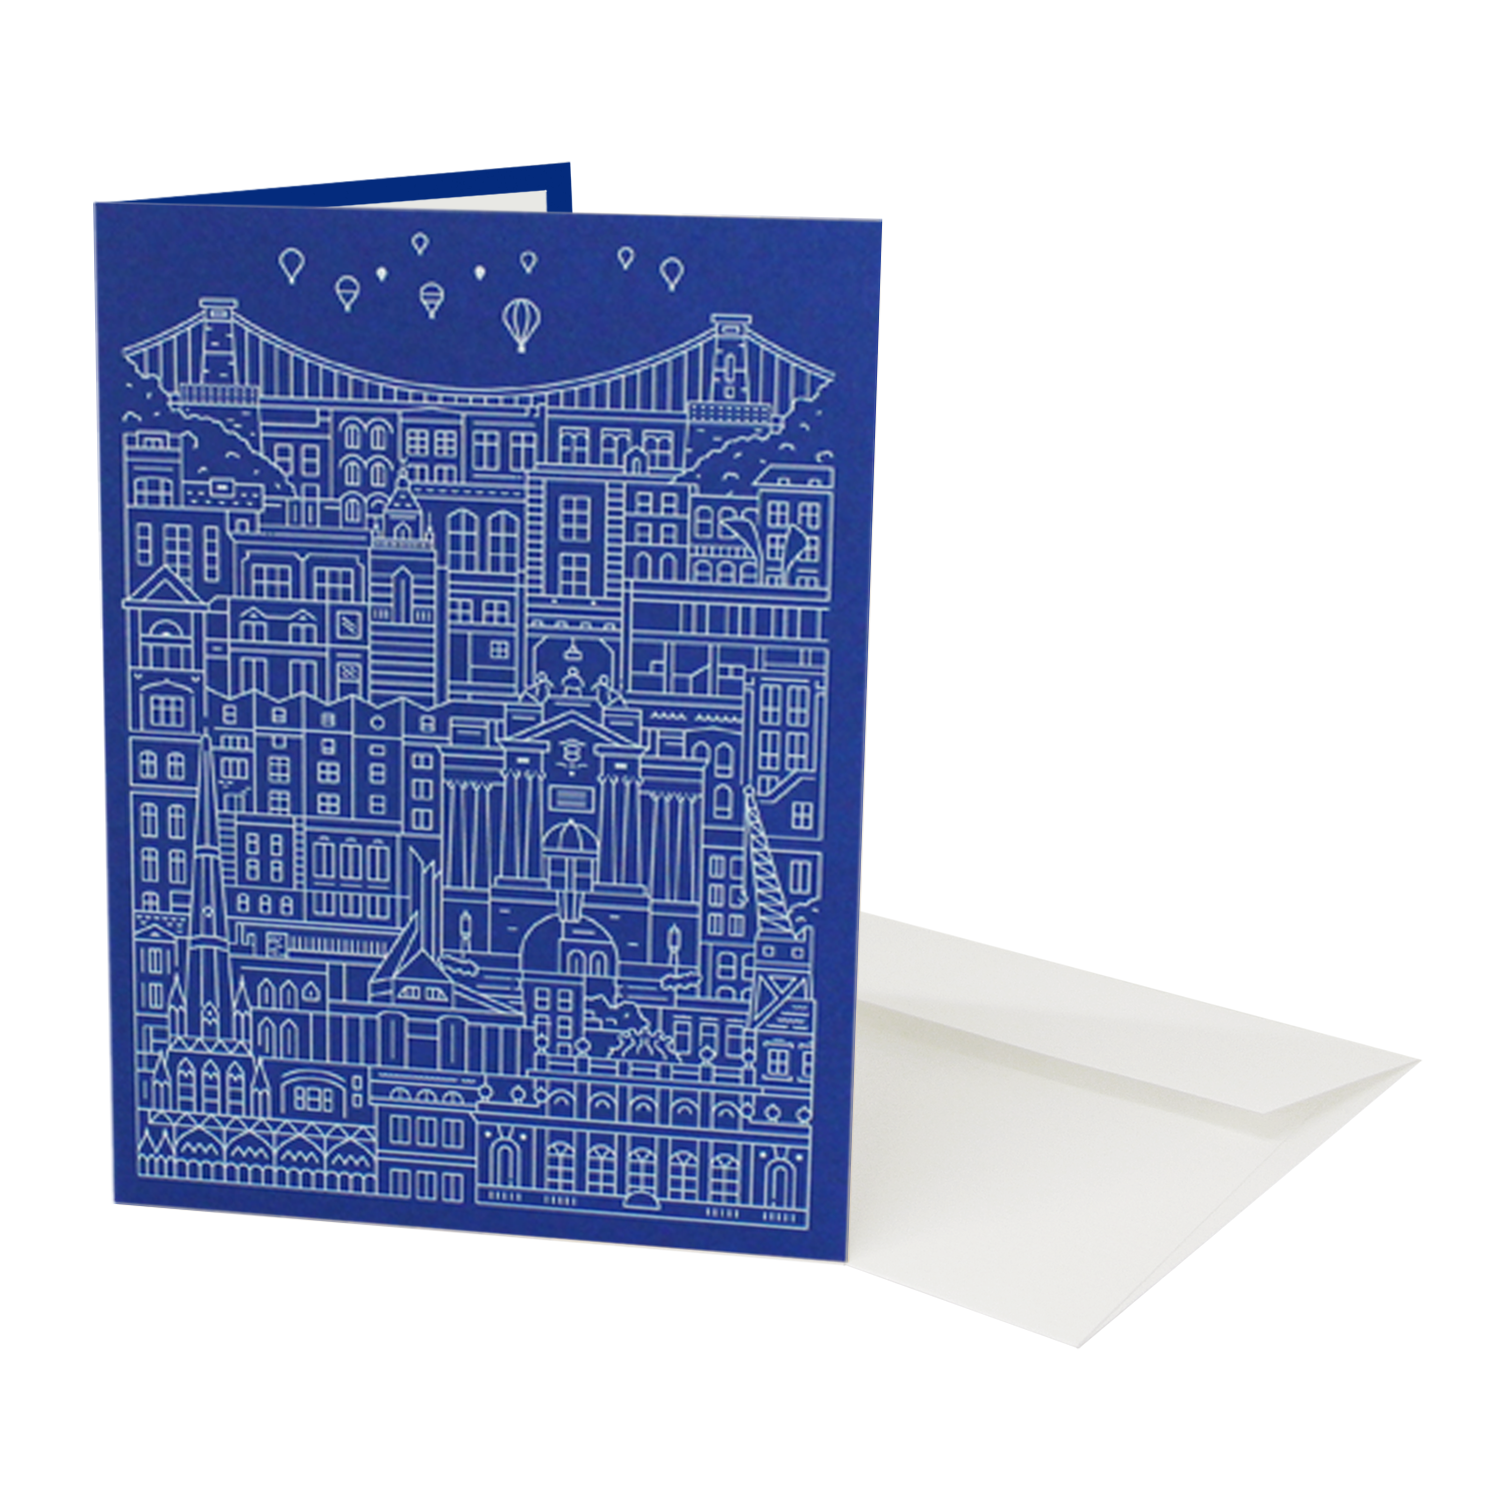 Place in Print The City Works Bristol Greetings Card